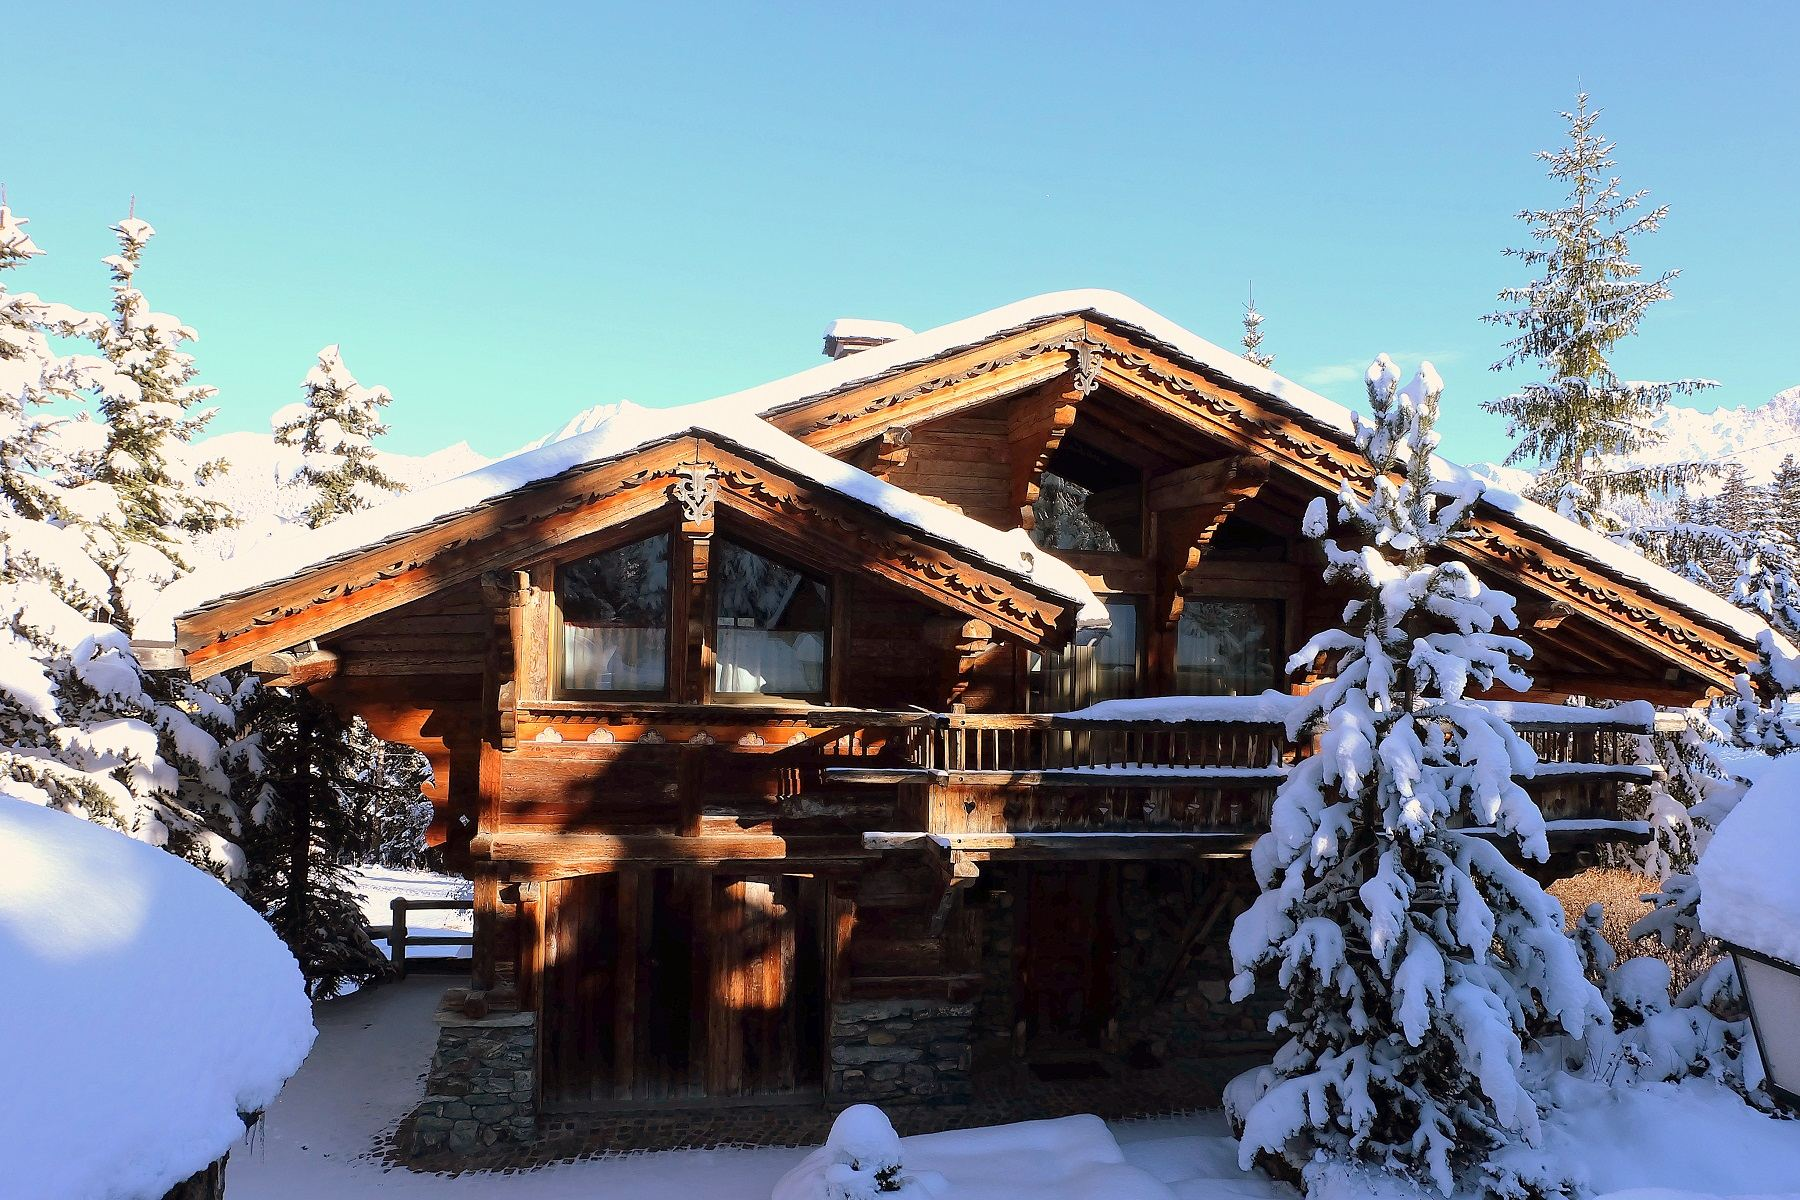 Casa Unifamiliar por un Alquiler en Courchevel Chalet for rent Les Fées Courchevel 1850, Ródano-Alpes, 73120 Francia